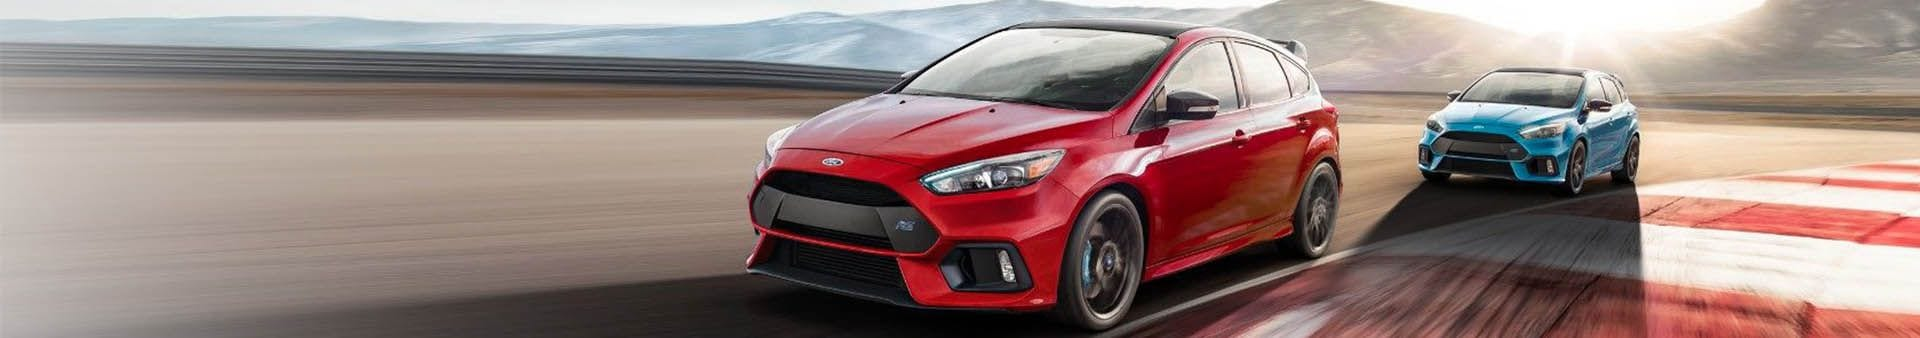 Ford Focus RS 2018 on Racetrack